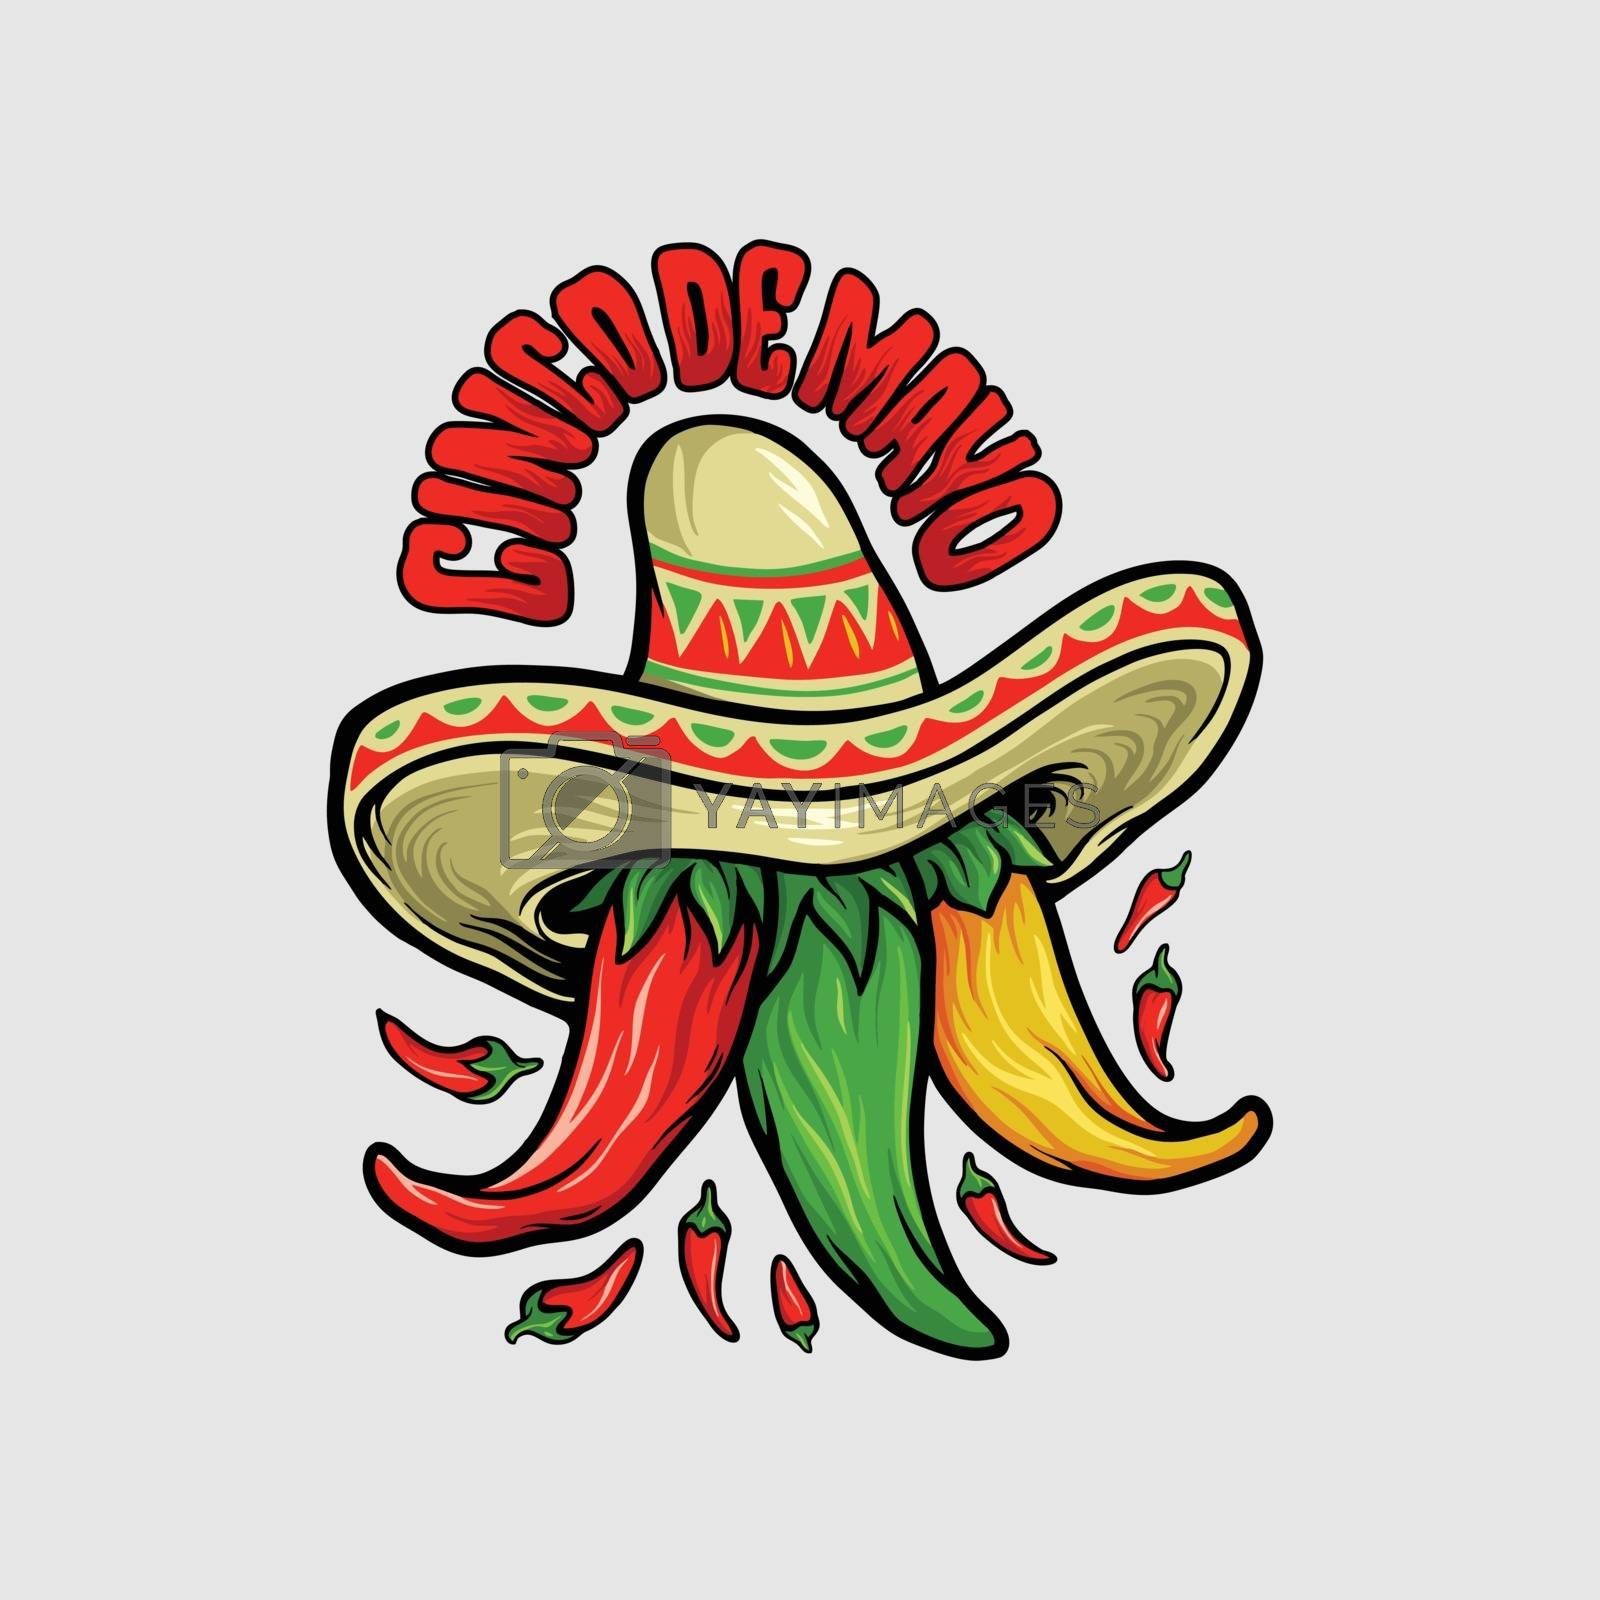 Logo Restaurant Cinco de Mayo  Mexican Chili Mascot for food and drink